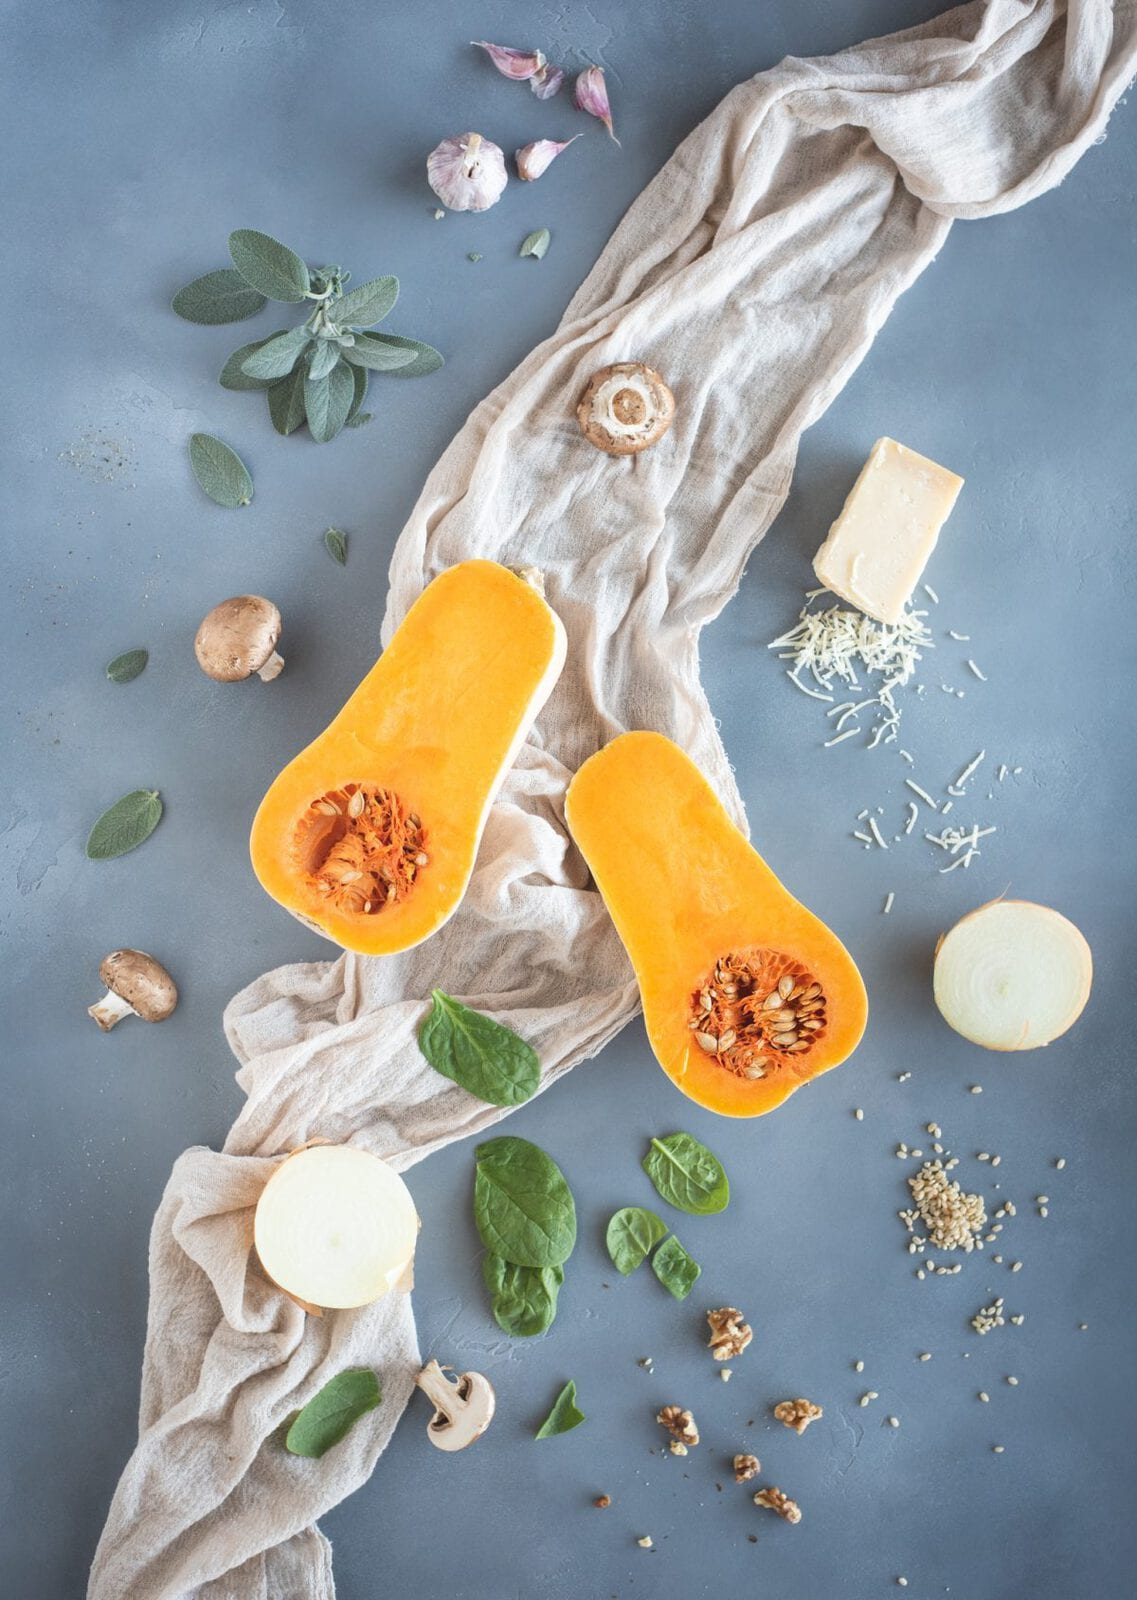 ingredients for Brown Rice Risotto with Butternut Squash & Mushrooms recipe